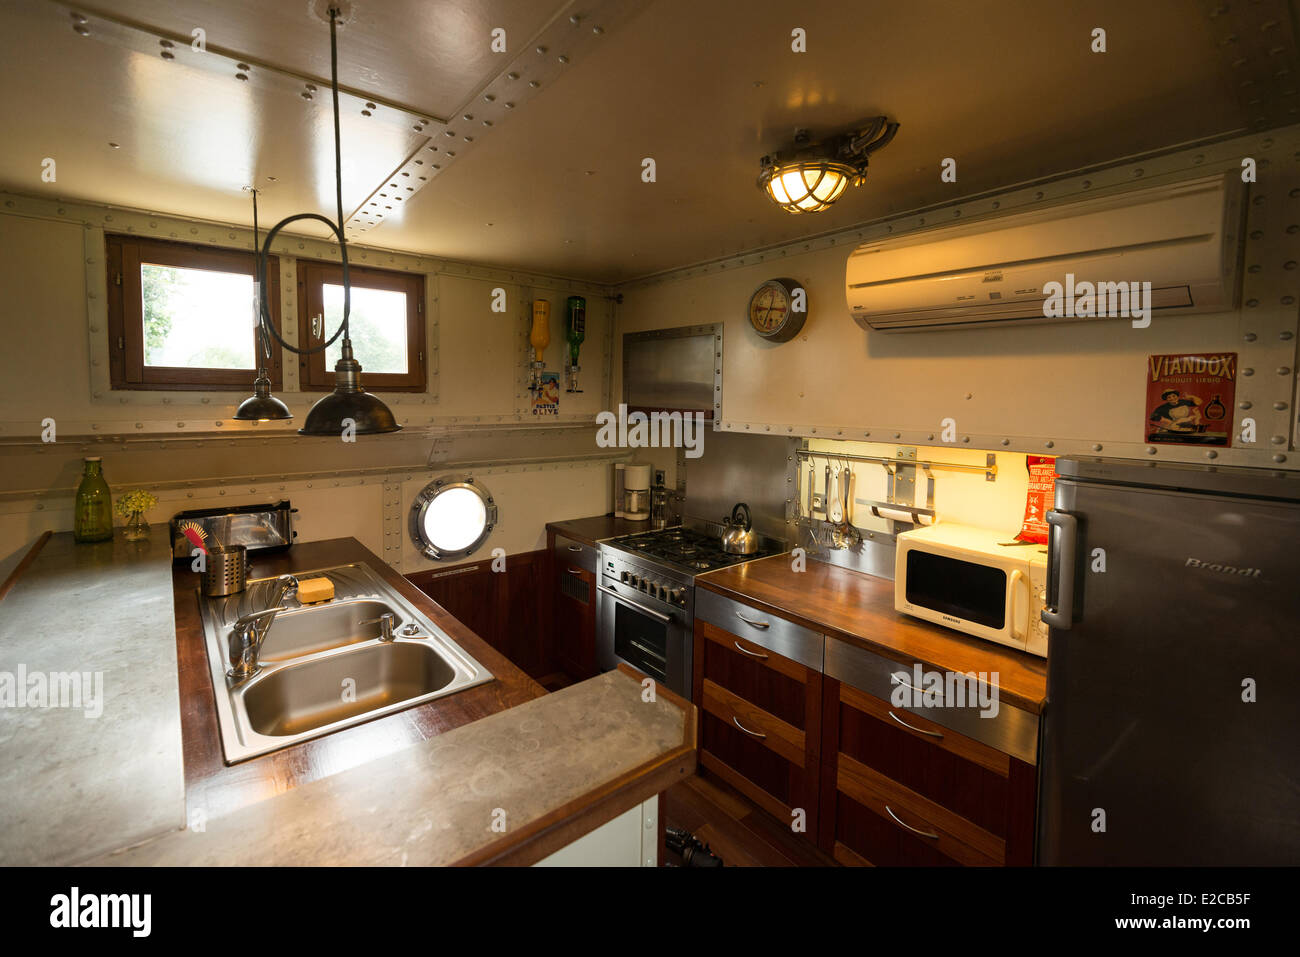 France, Ille et Vilaine, Chevaigne, hostel barge of the lock of Grugedaine - Stock Image